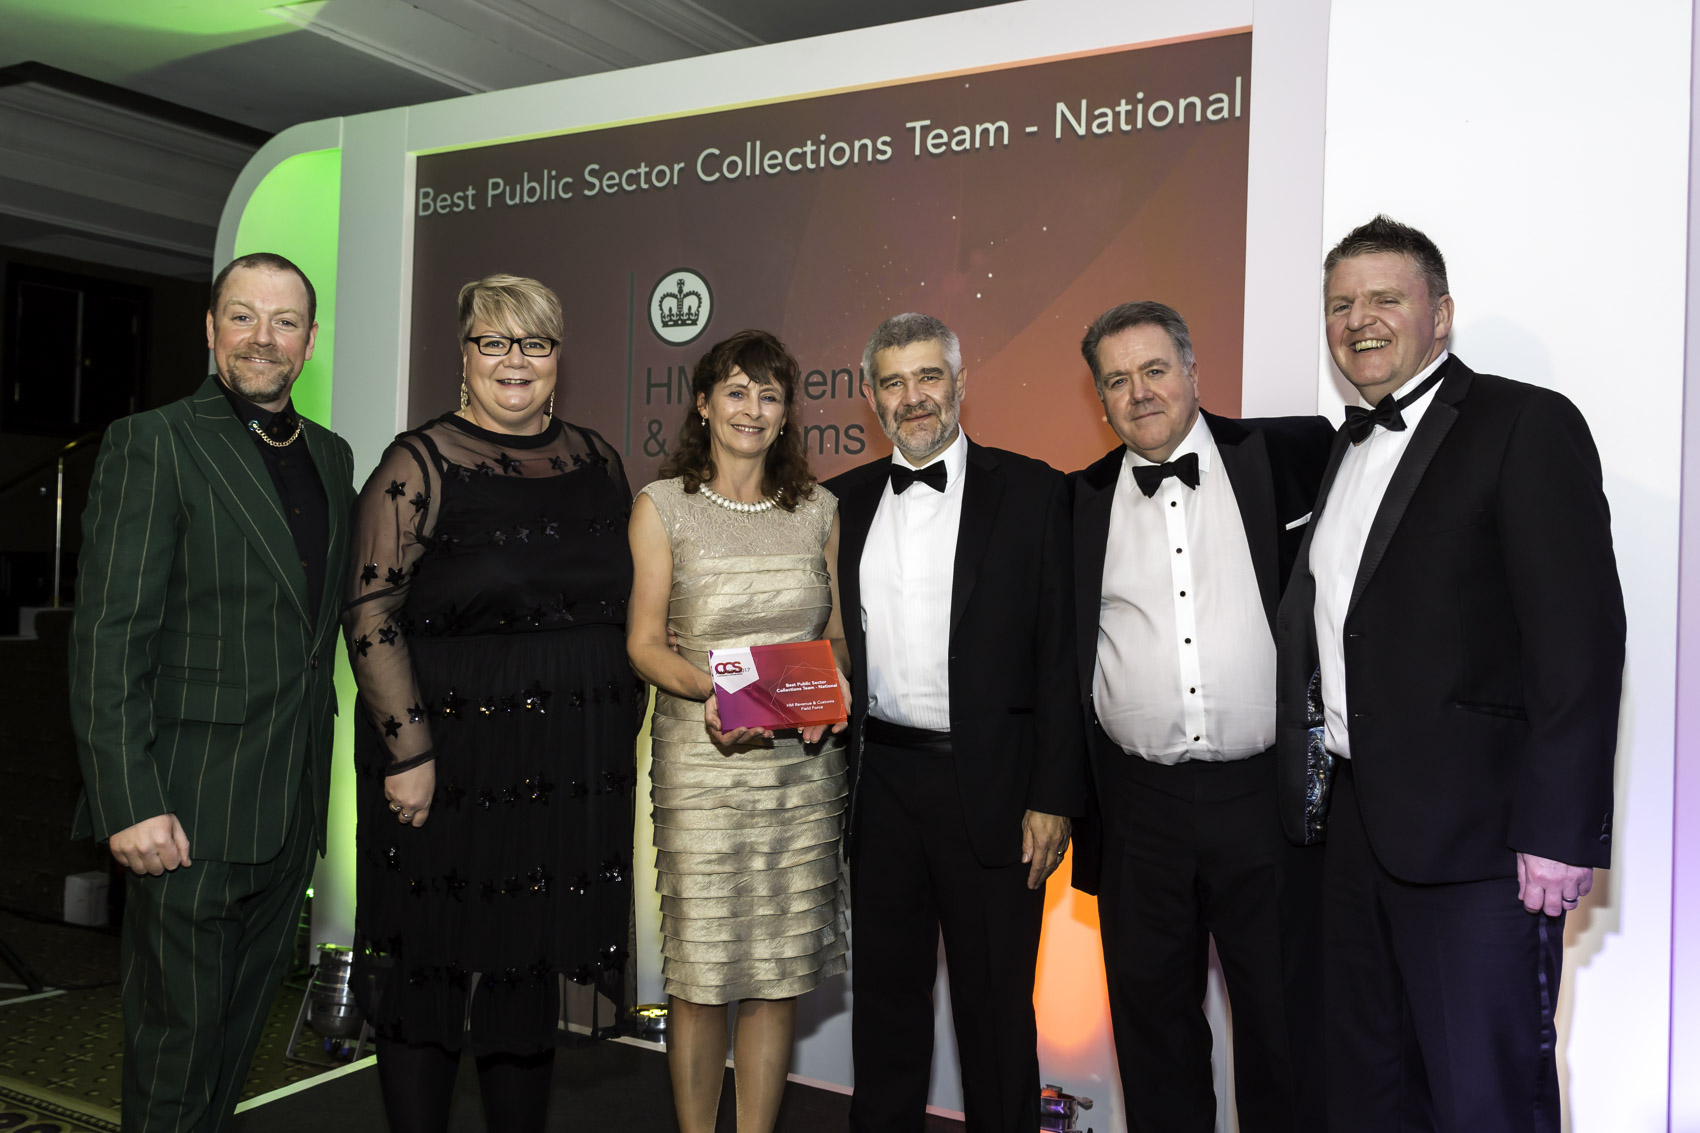 Winners CCS 2017 - 4 Best Public Sector Collections Team - National